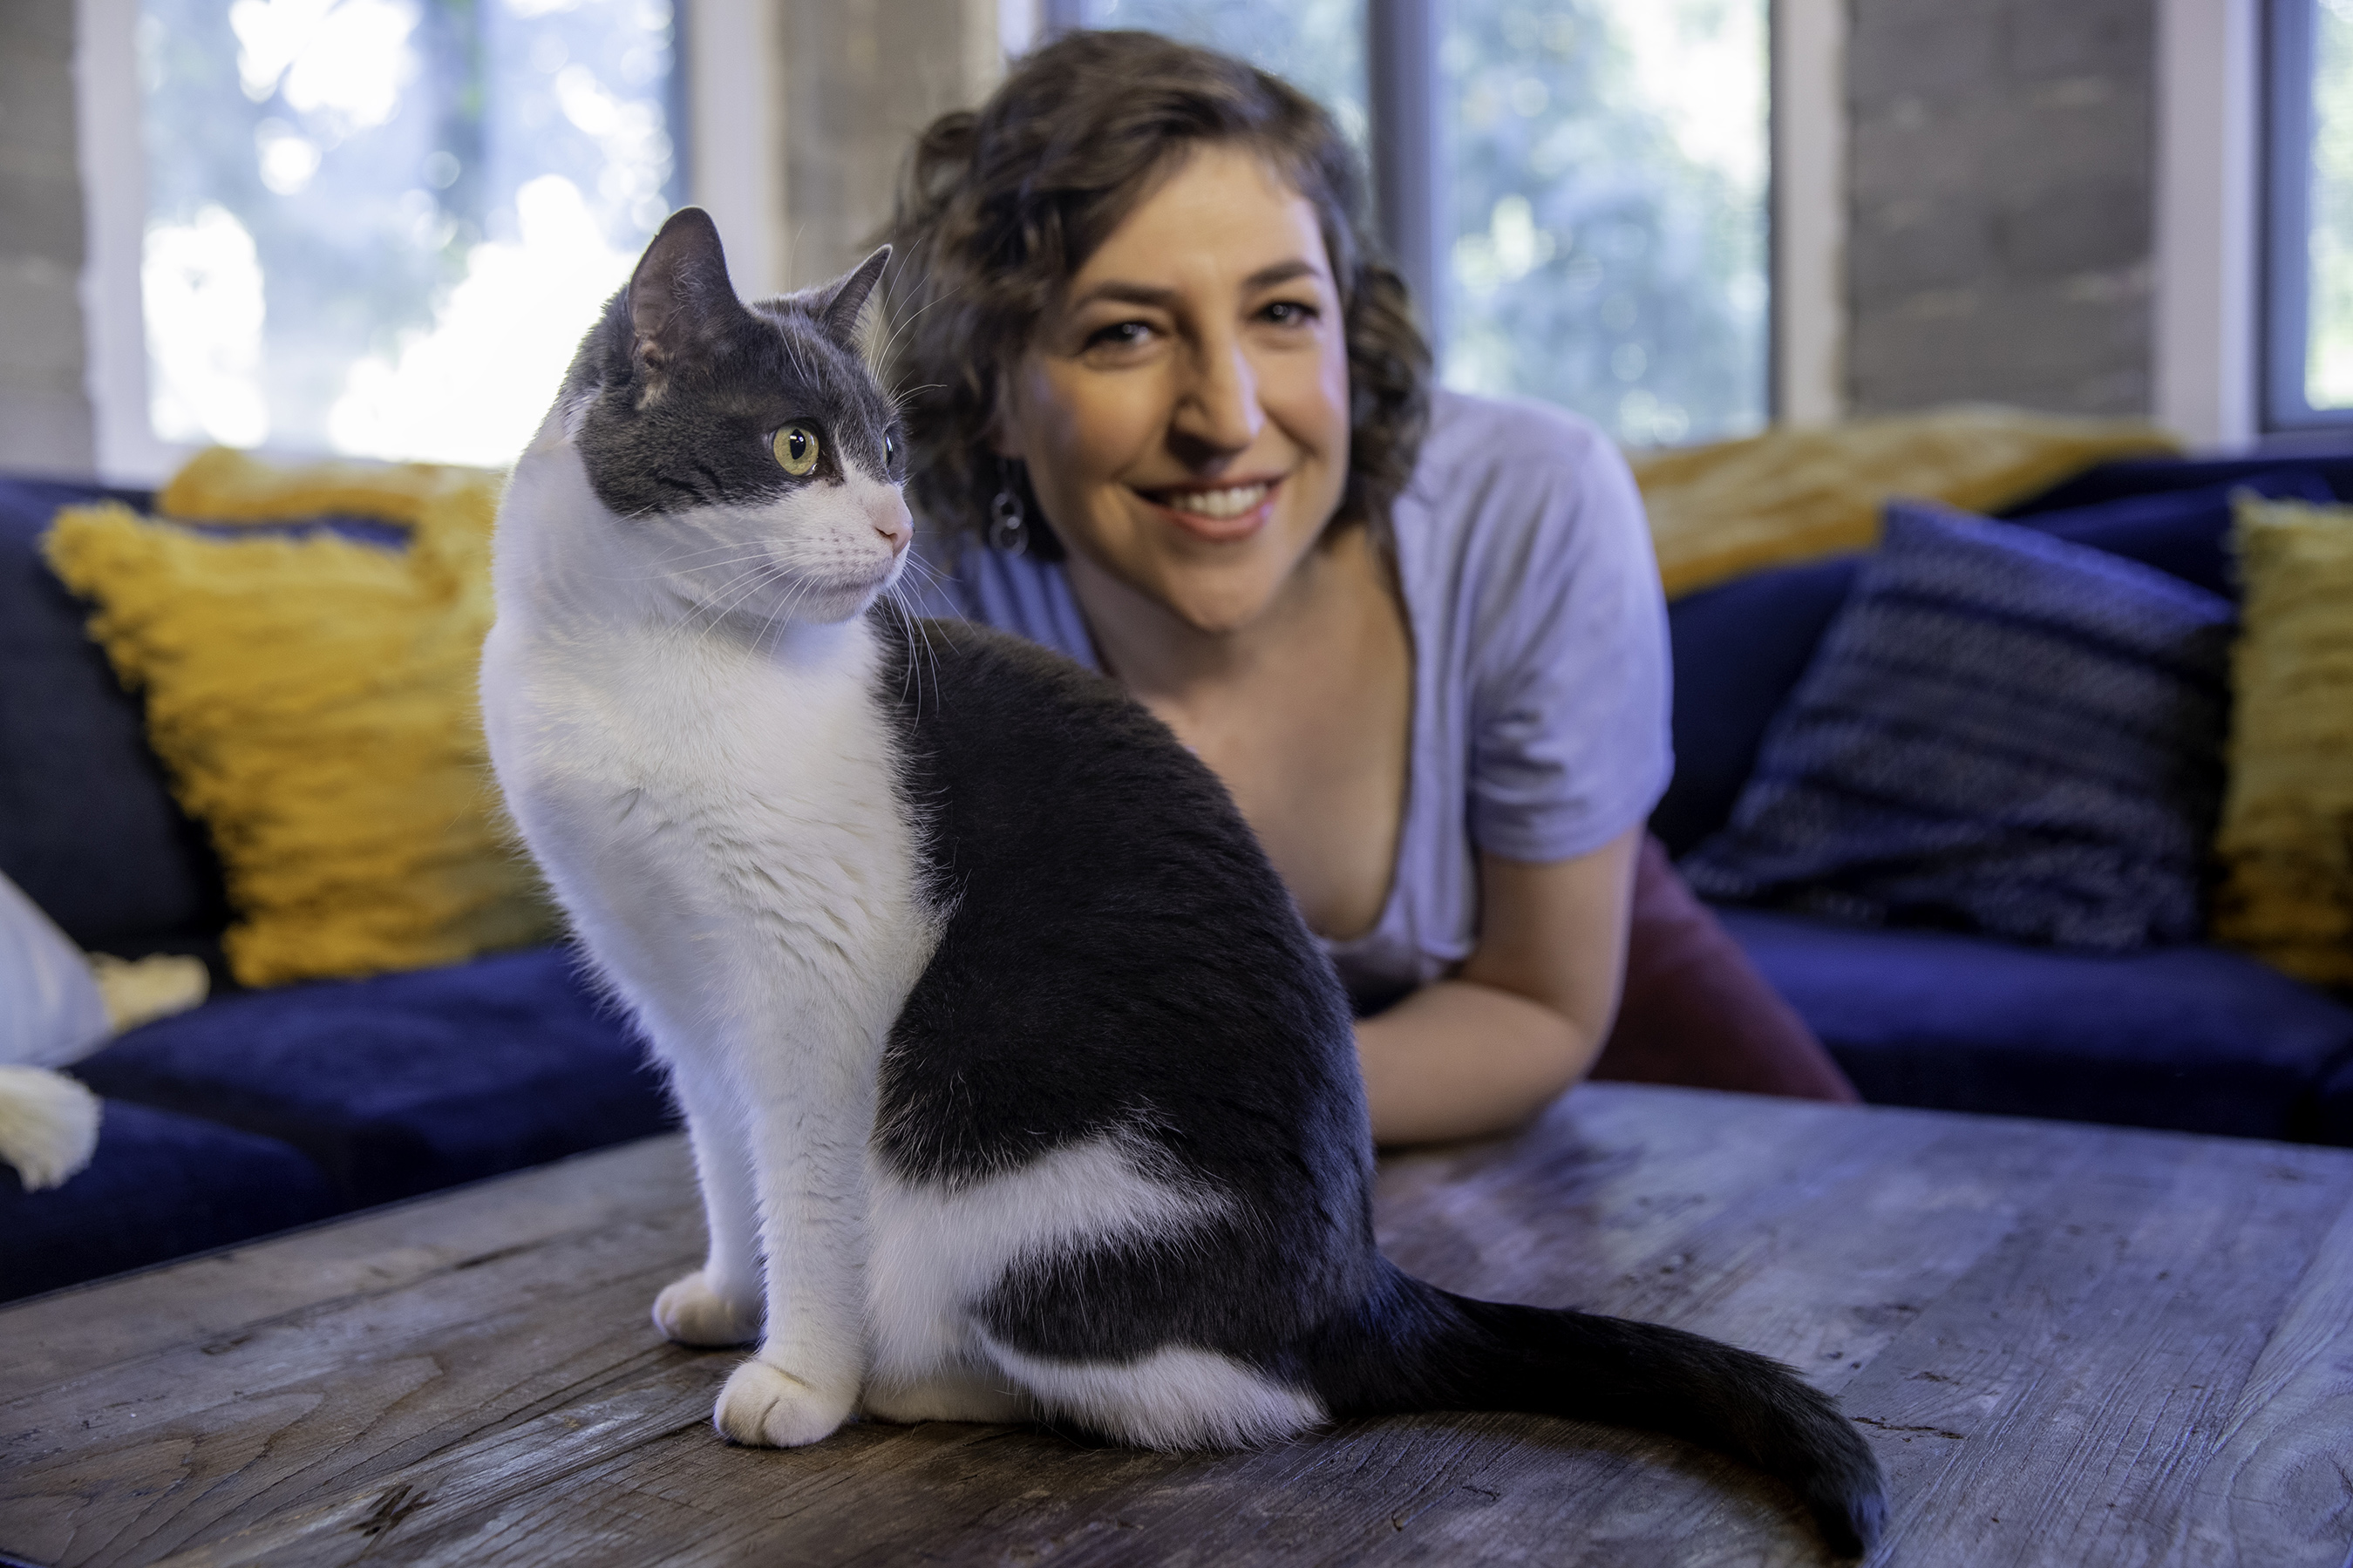 Purina Pro Plan is teaming up with actress and neuroscientist Mayim Bialik to kick-off The LiveClear Challenge, encouraging cat owners with cat allergen sensitivities to discover the life-changing power of Pro Plan LiveClear, the first and only cat food that reduces the major allergen in cat hair and dander.